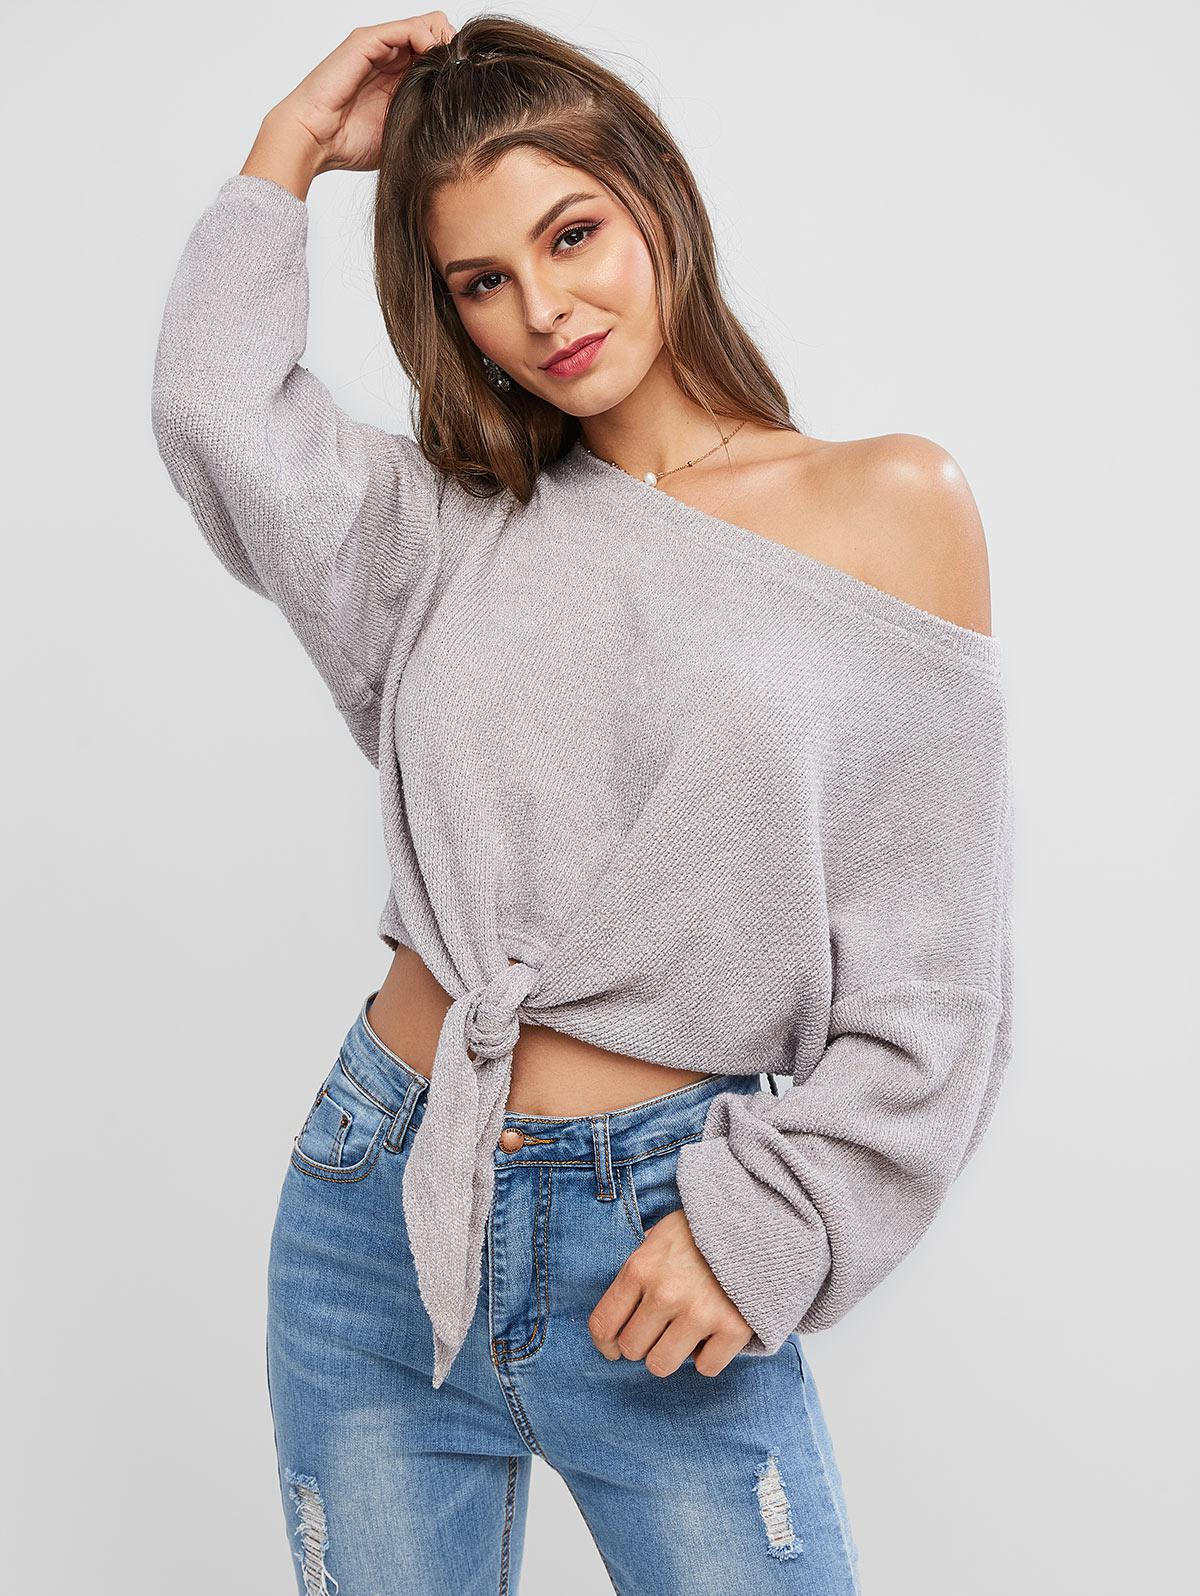 ZAFUL Self-tie Oversized Sweater фото